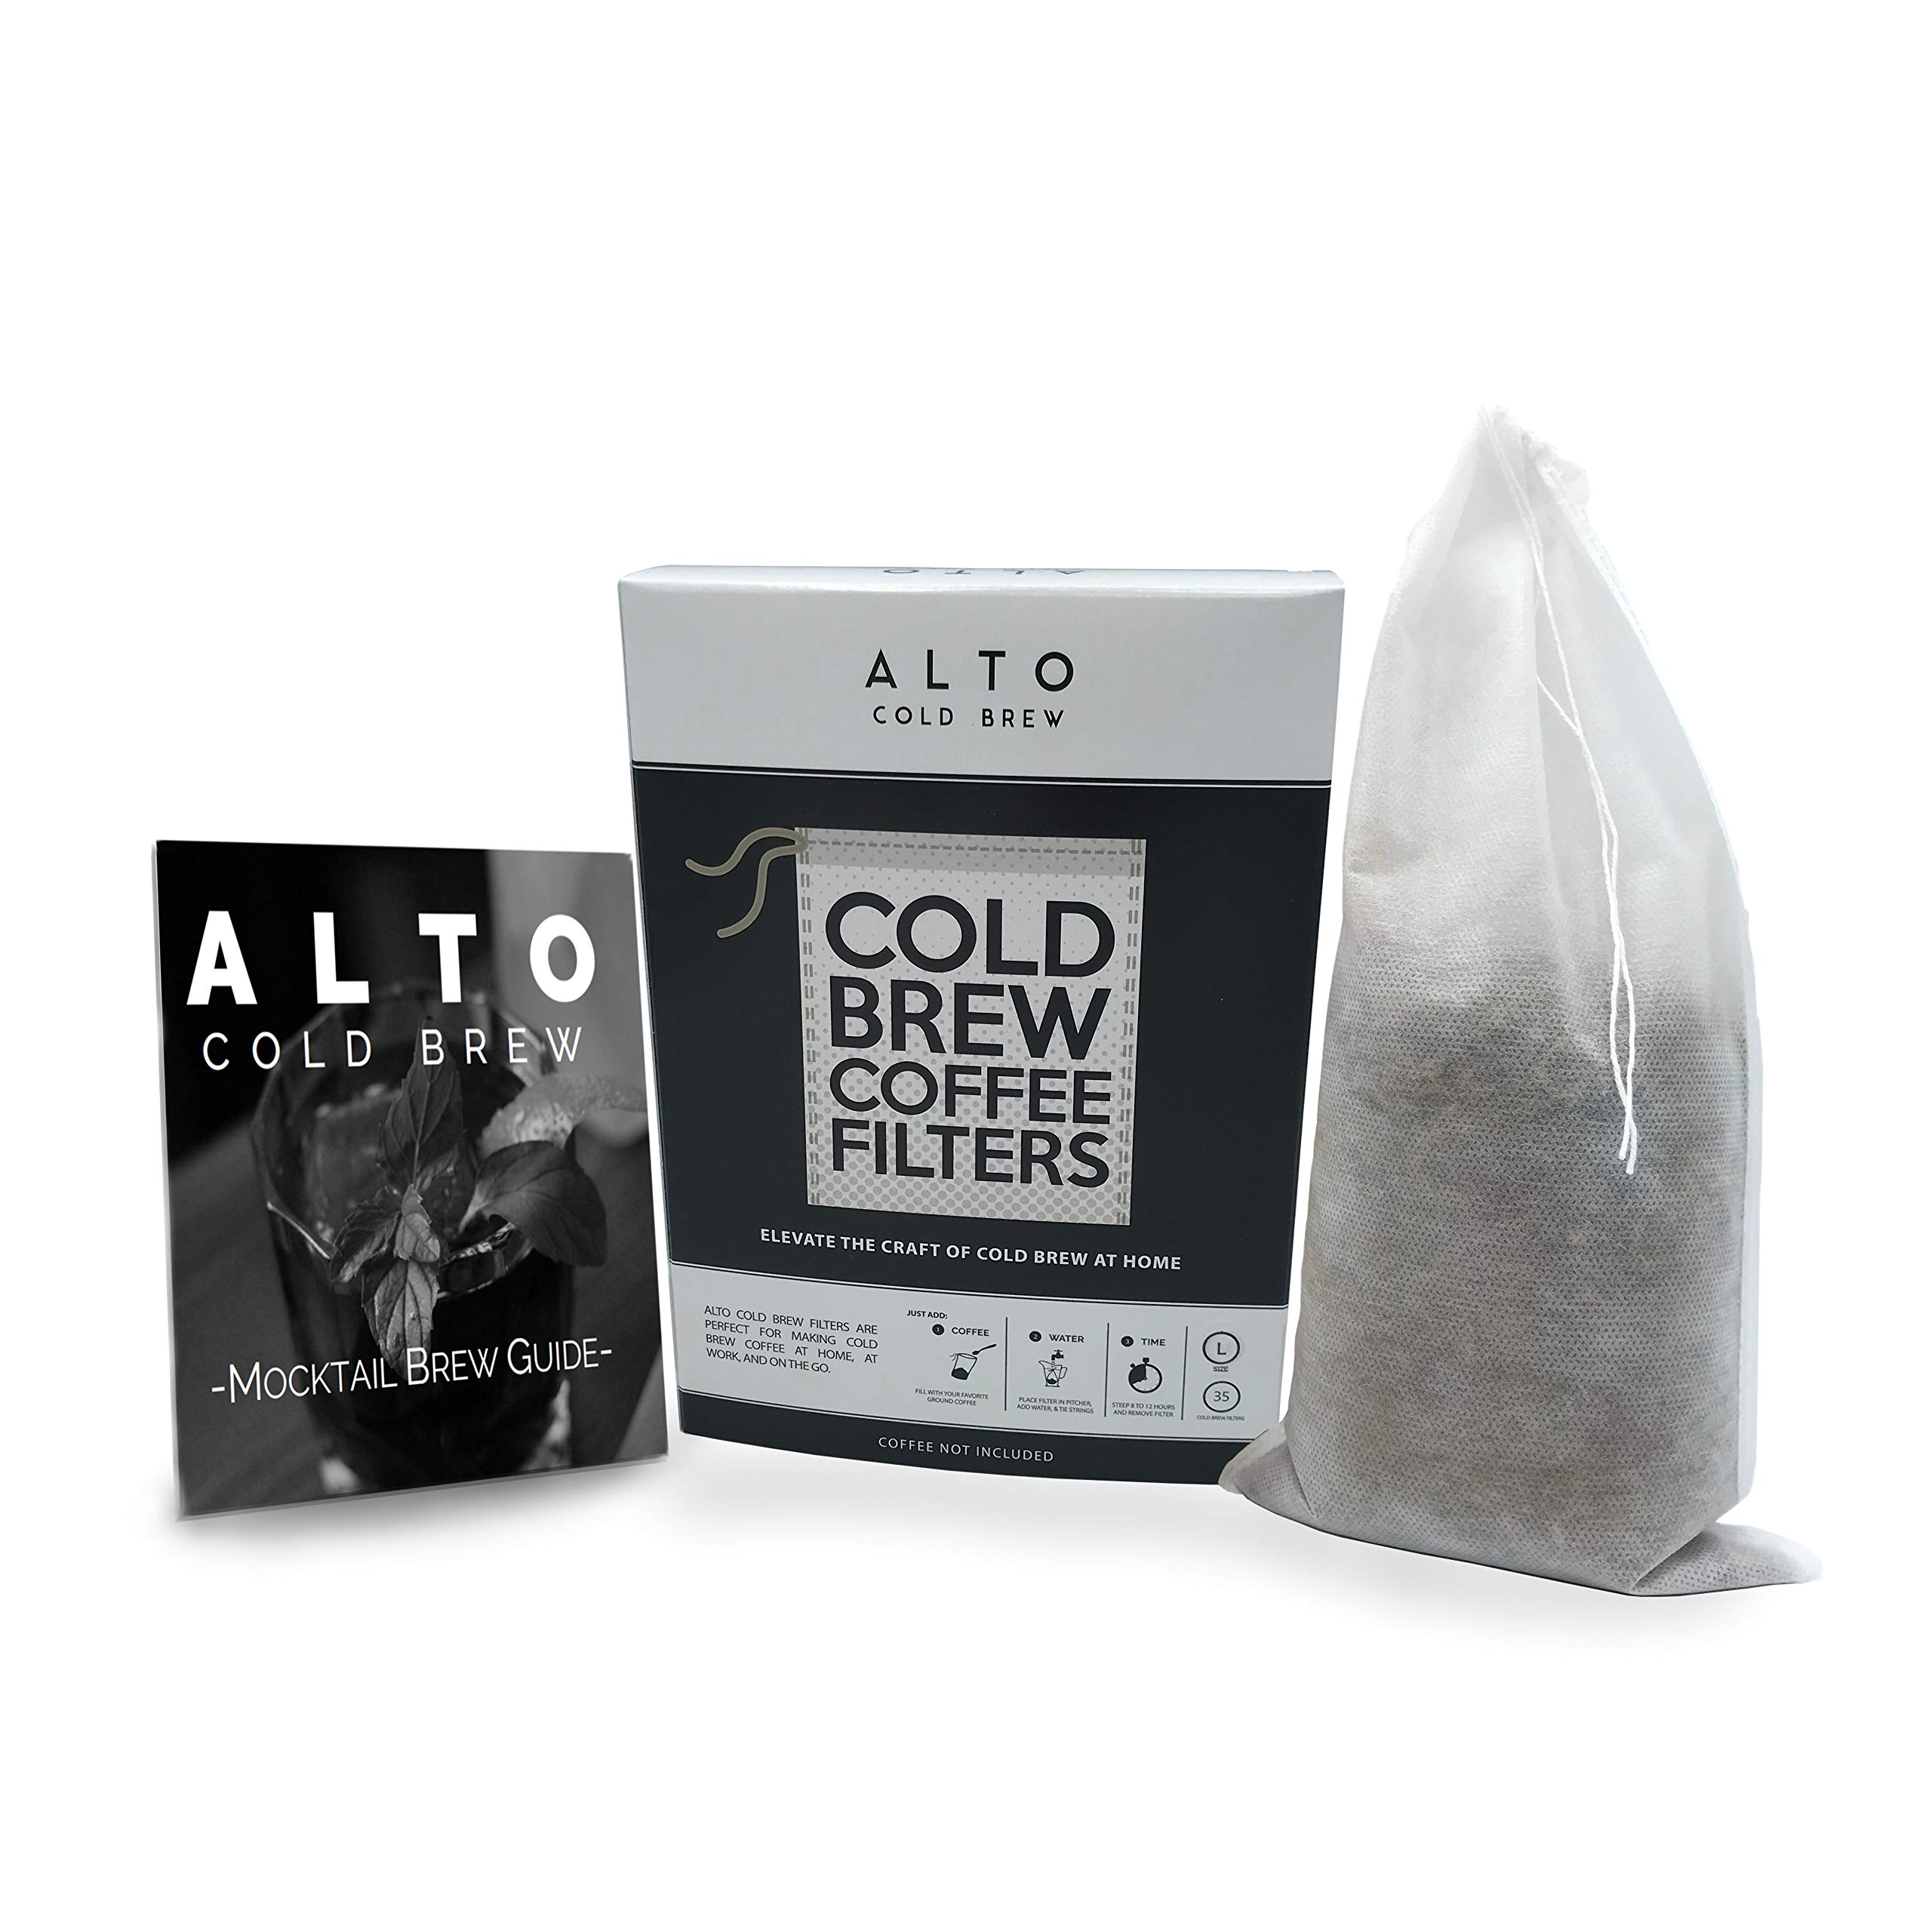 No Mess Disposable Cold Brew Coffee Filters - 35 Pack - Cleaner, Brighter Cold Brew, Without the Cleanup - Works for Tea, Iced Coffee, Cold Press, French Press (Gallon Pitcher Size) by Alto Cold Brew